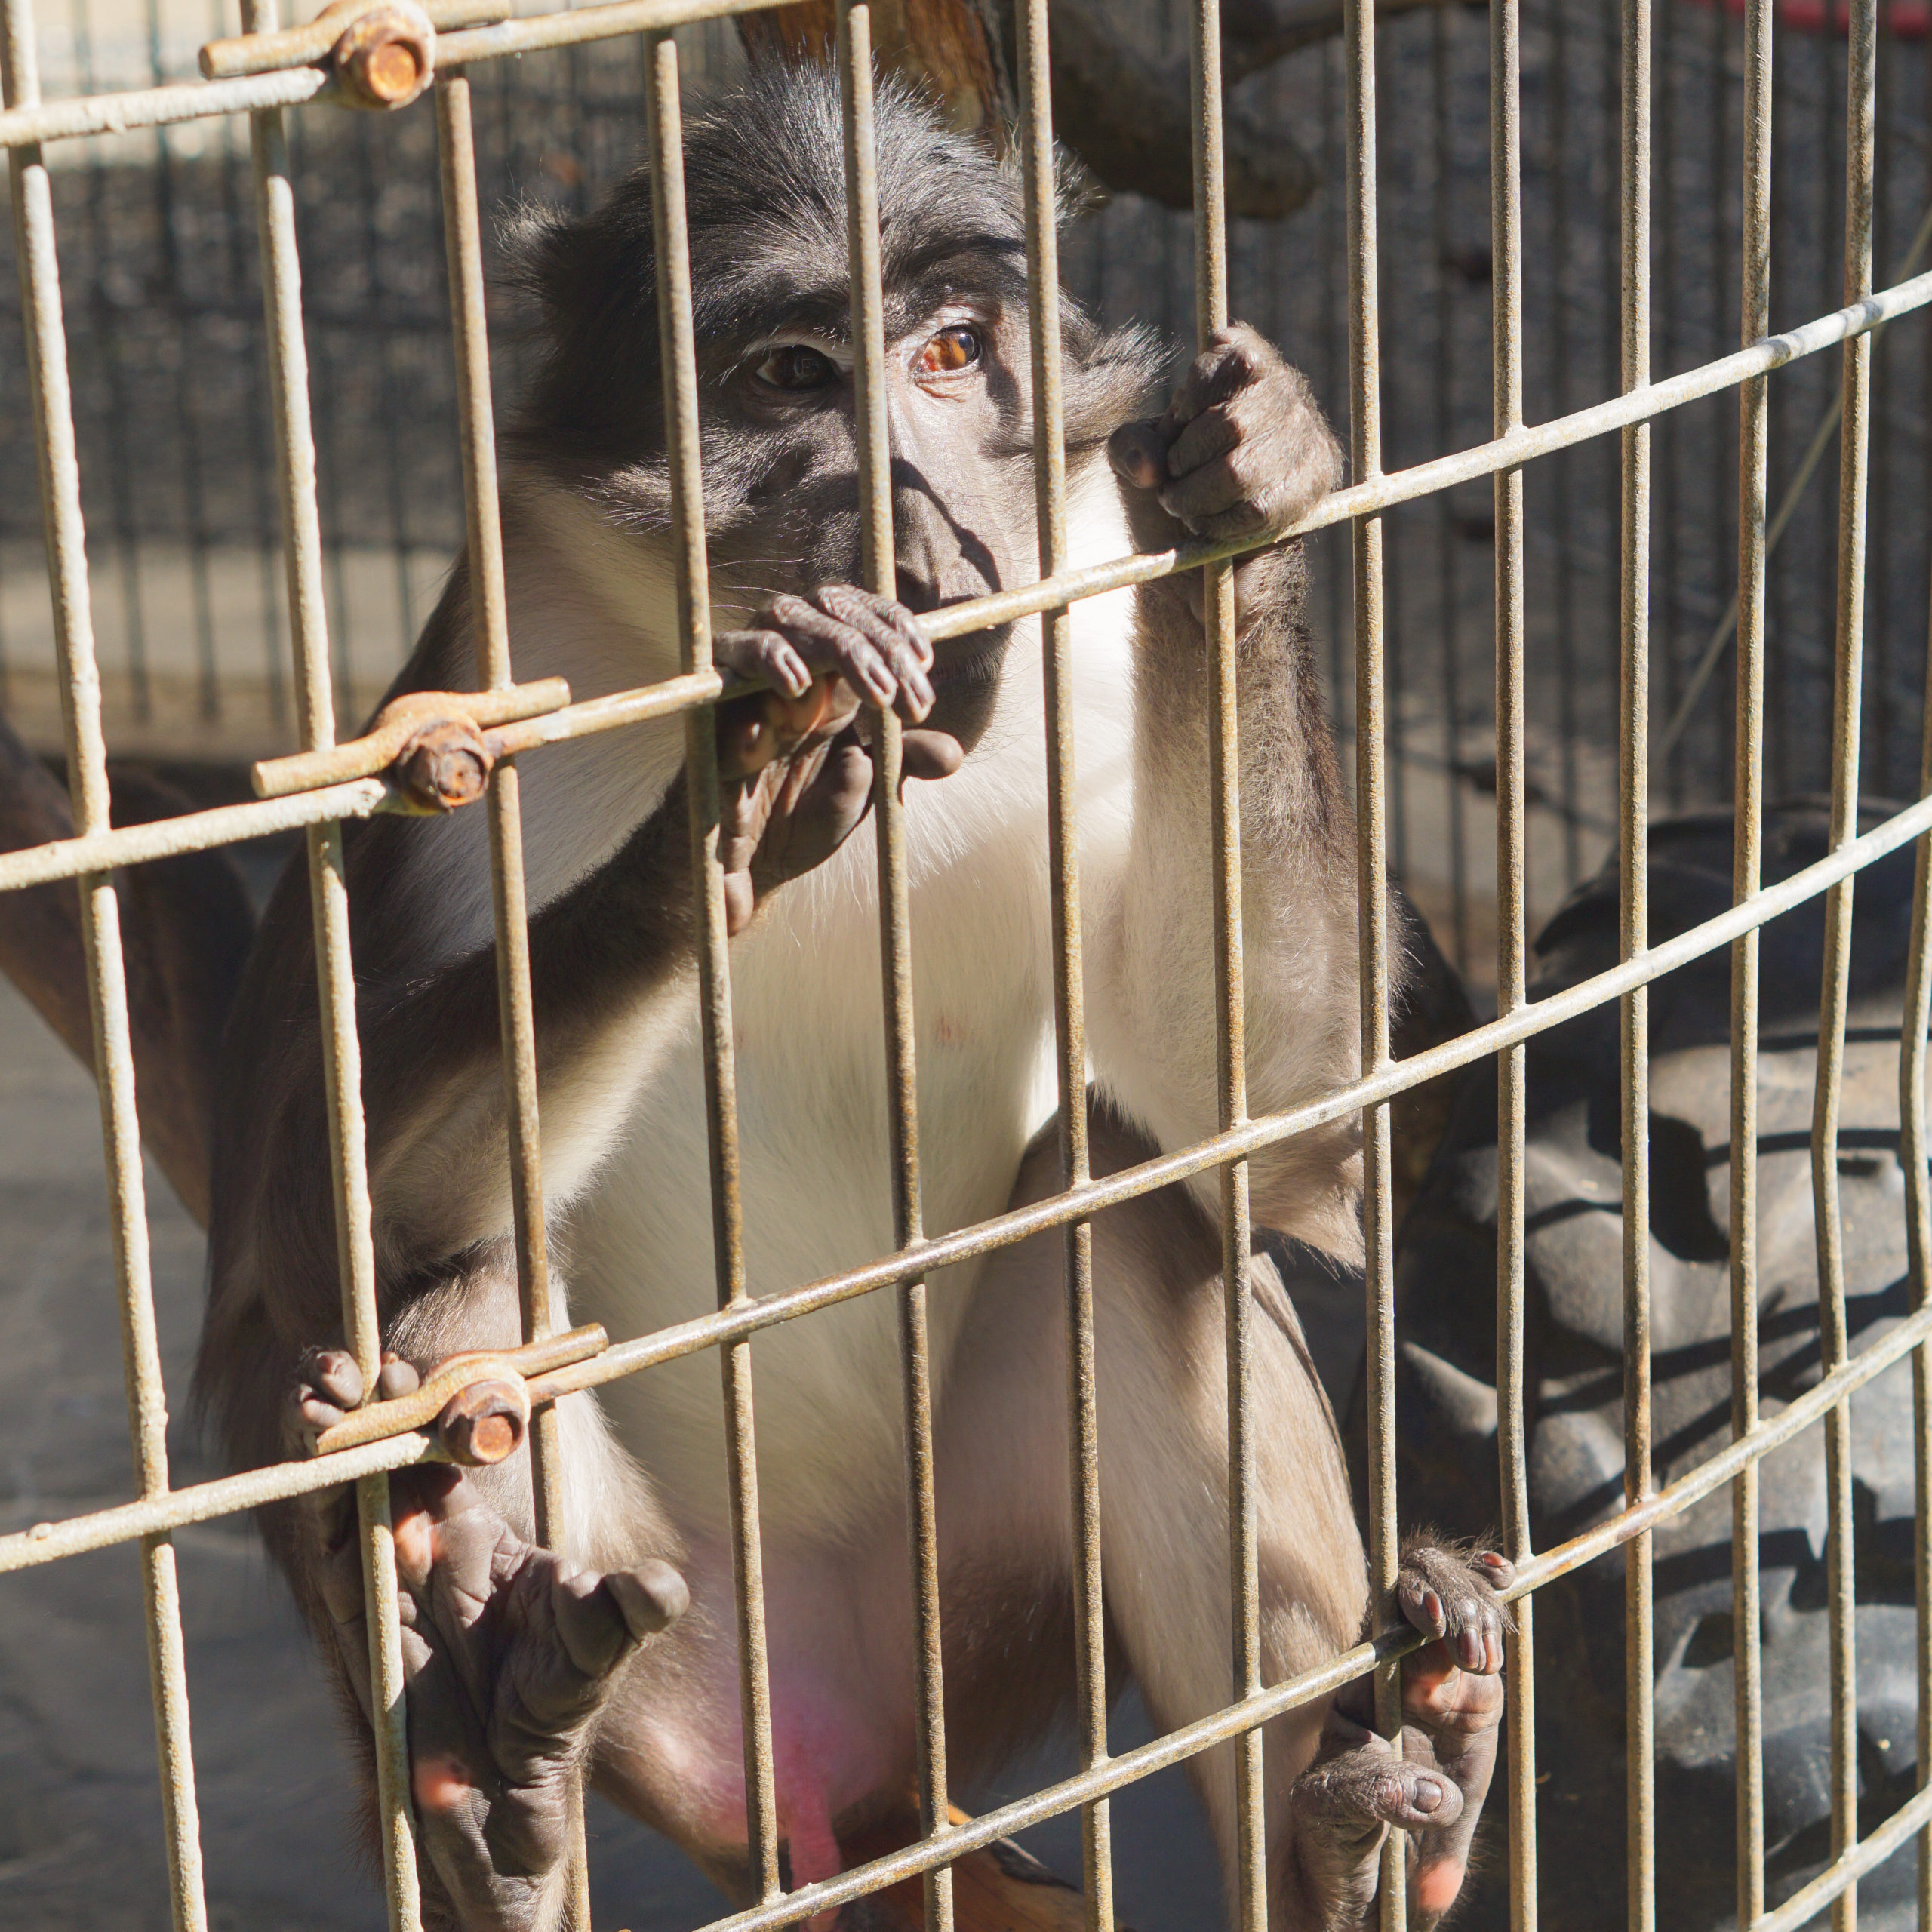 Monkey trapped in a cage at a roadside zoo